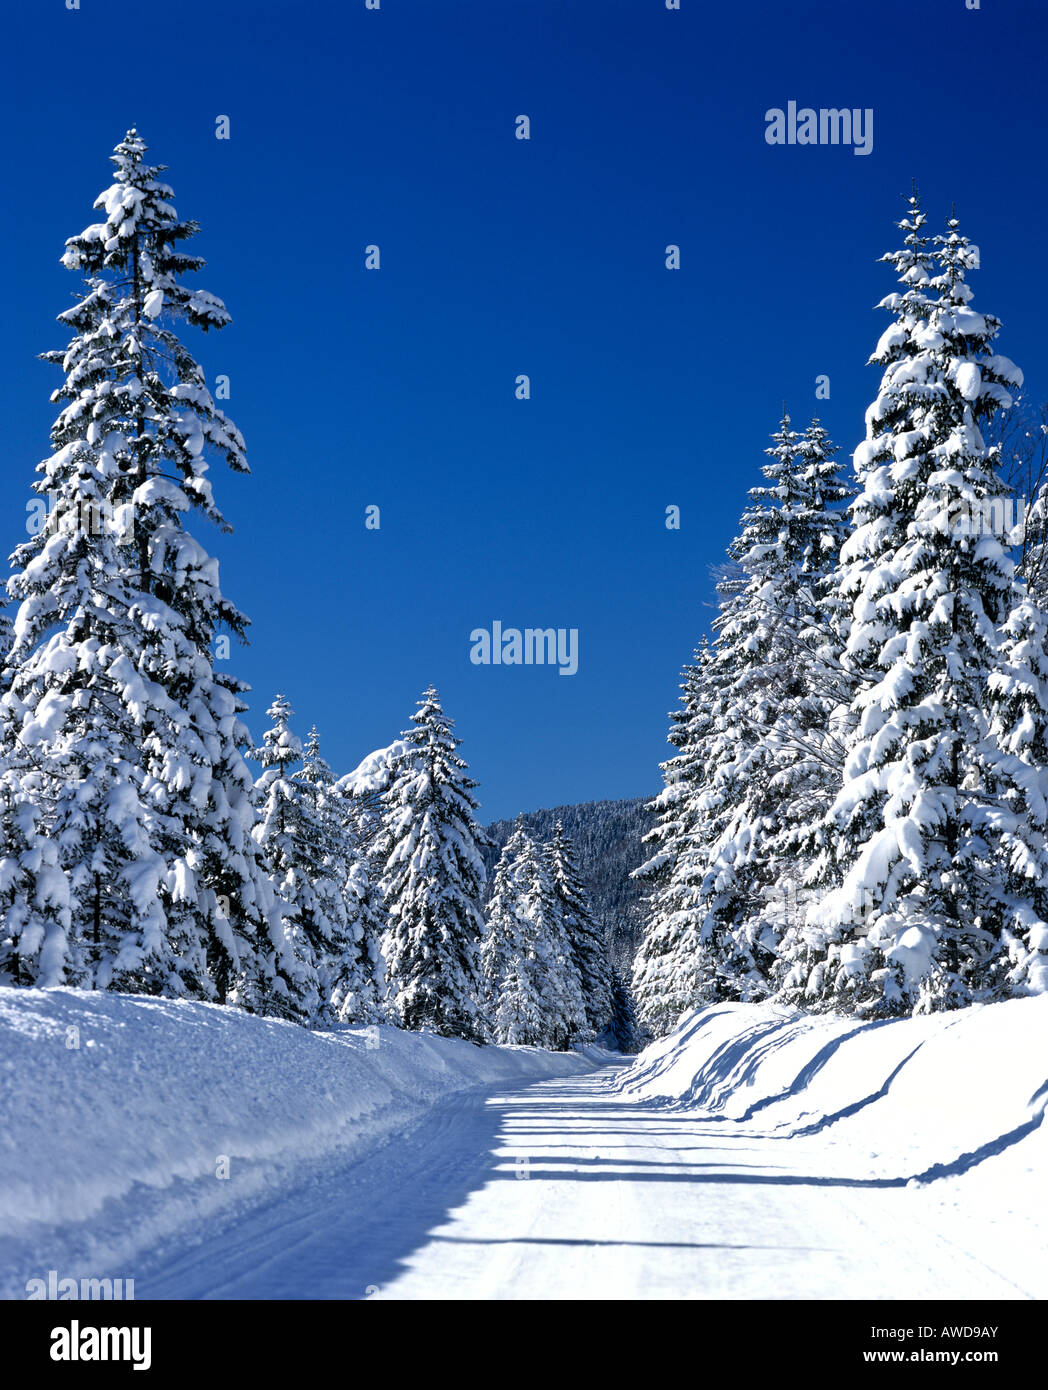 Snowy country road in winter Stock Photo